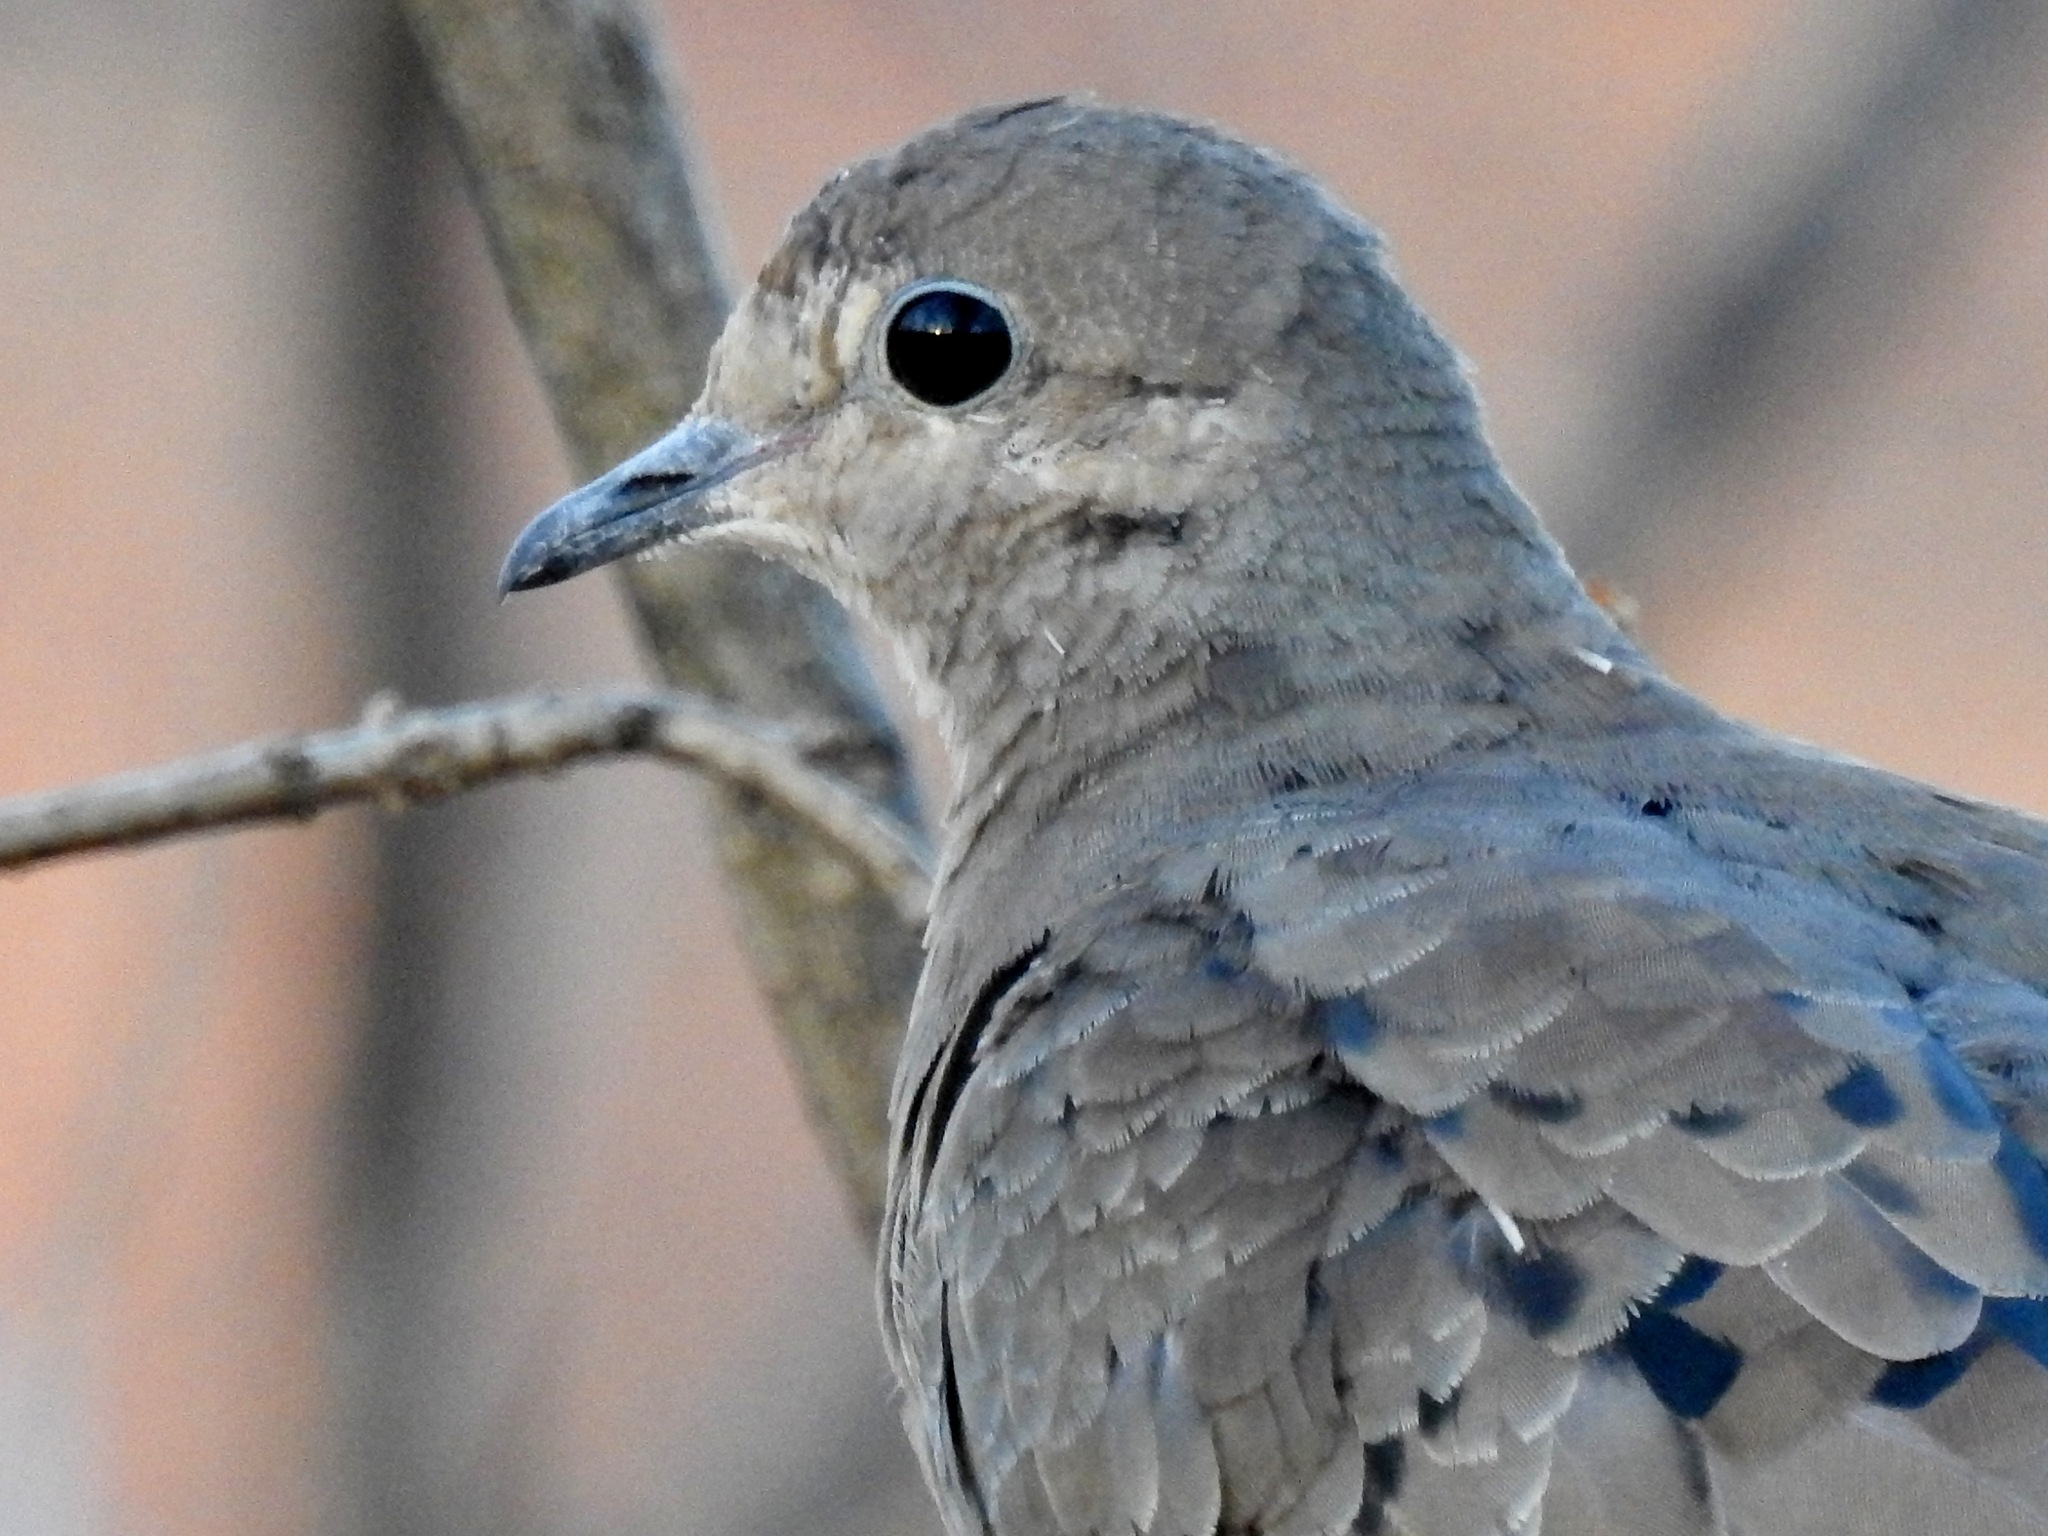 Mourning dove by carol.capozzi.18